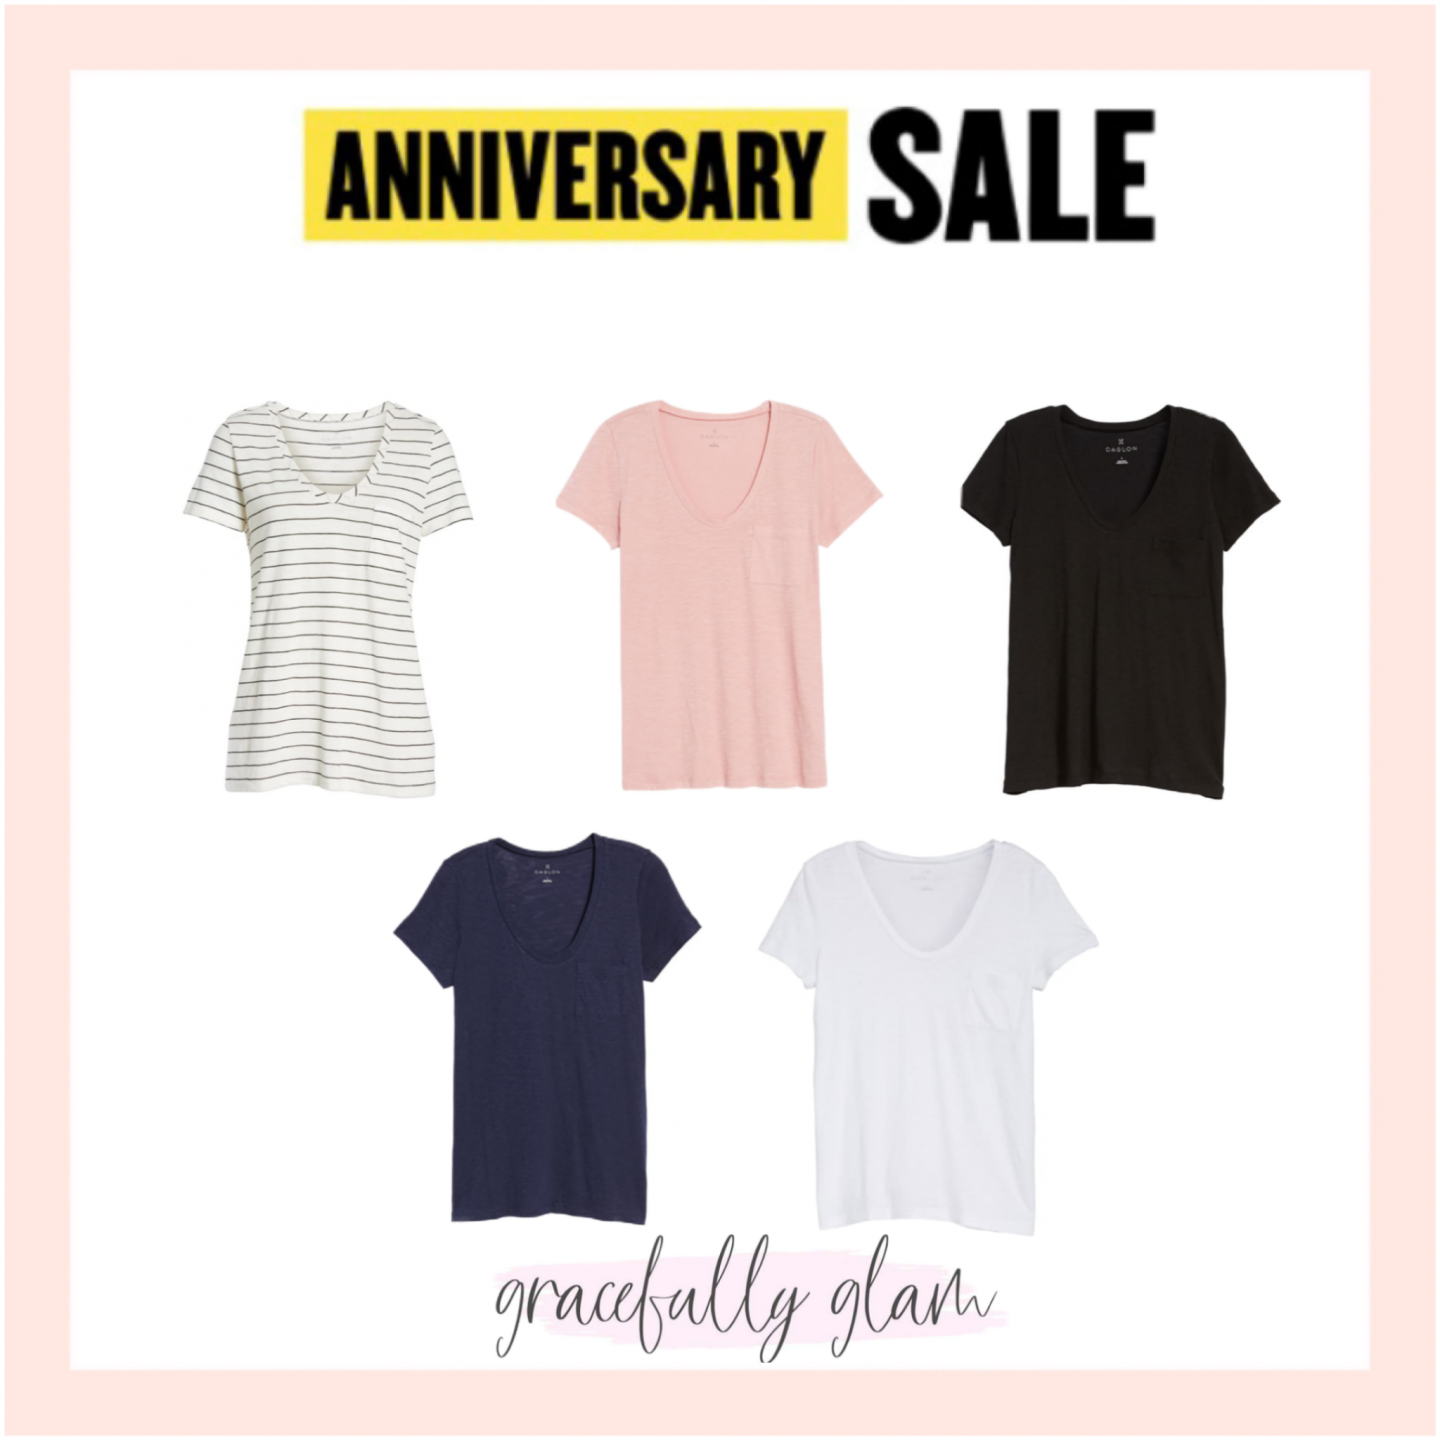 Ten Items To Consider From The Nordstrom Anniversary Sale